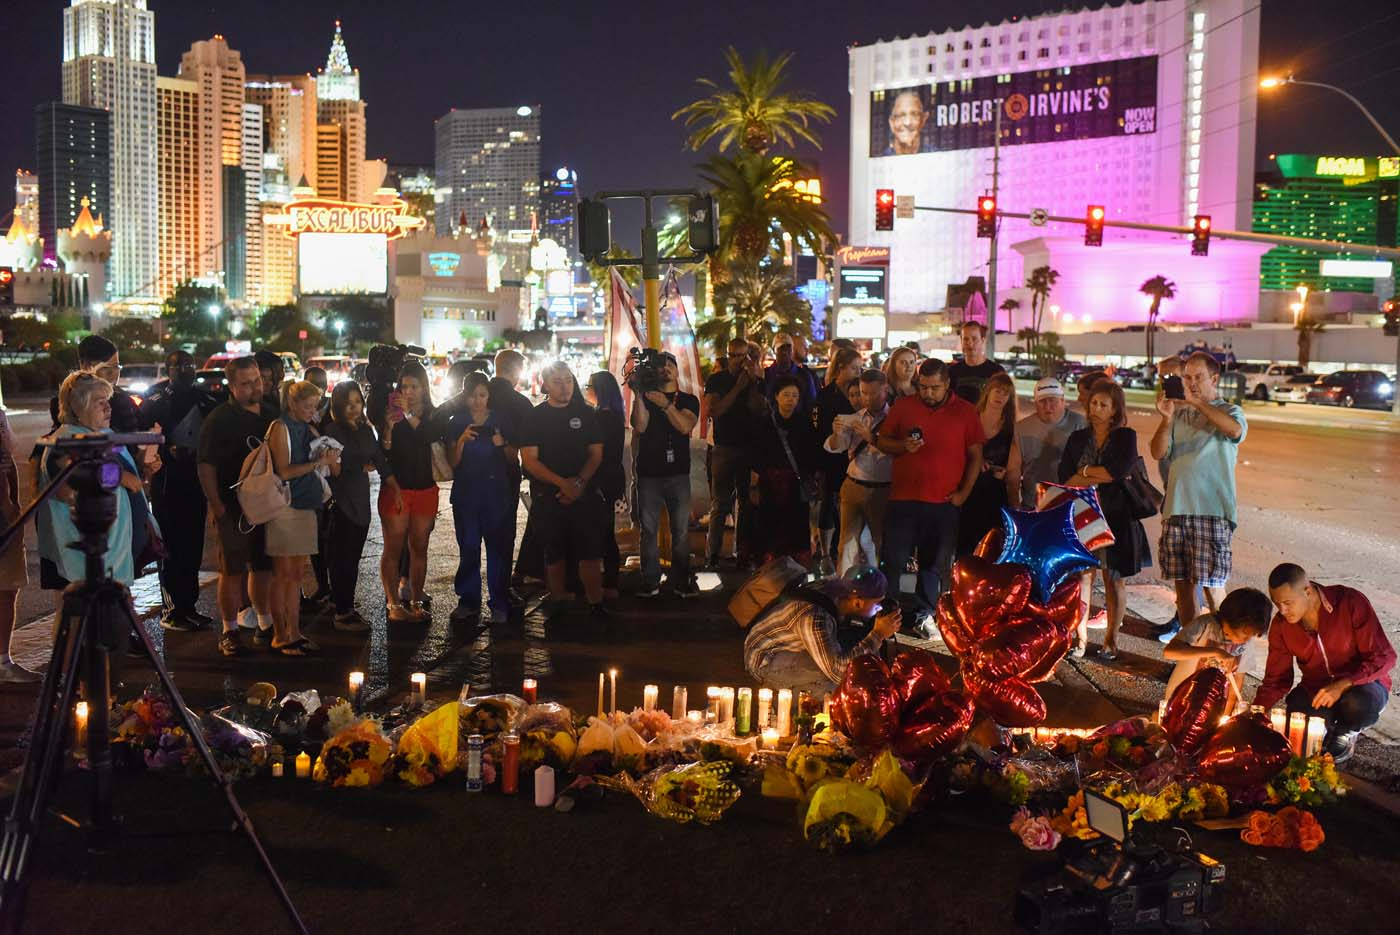 People gather and light candles at a makeshift memorial near the Mandalay Hotel on the Las Vegas Strip, in Las Vegas, Nevada on October 3, 2017, after a gunman killed 58 people and wounded more than 500 others, before taking his own life, when he opened fire from a hotel on a country music festival. Police said the gunman, a 64-year-old local resident named as Stephen Paddock, had been killed after a SWAT team responded to reports of multiple gunfire from the 32nd floor of the Mandalay Bay, a hotel-casino next to the concert venue. / AFP PHOTO / Robyn Beck